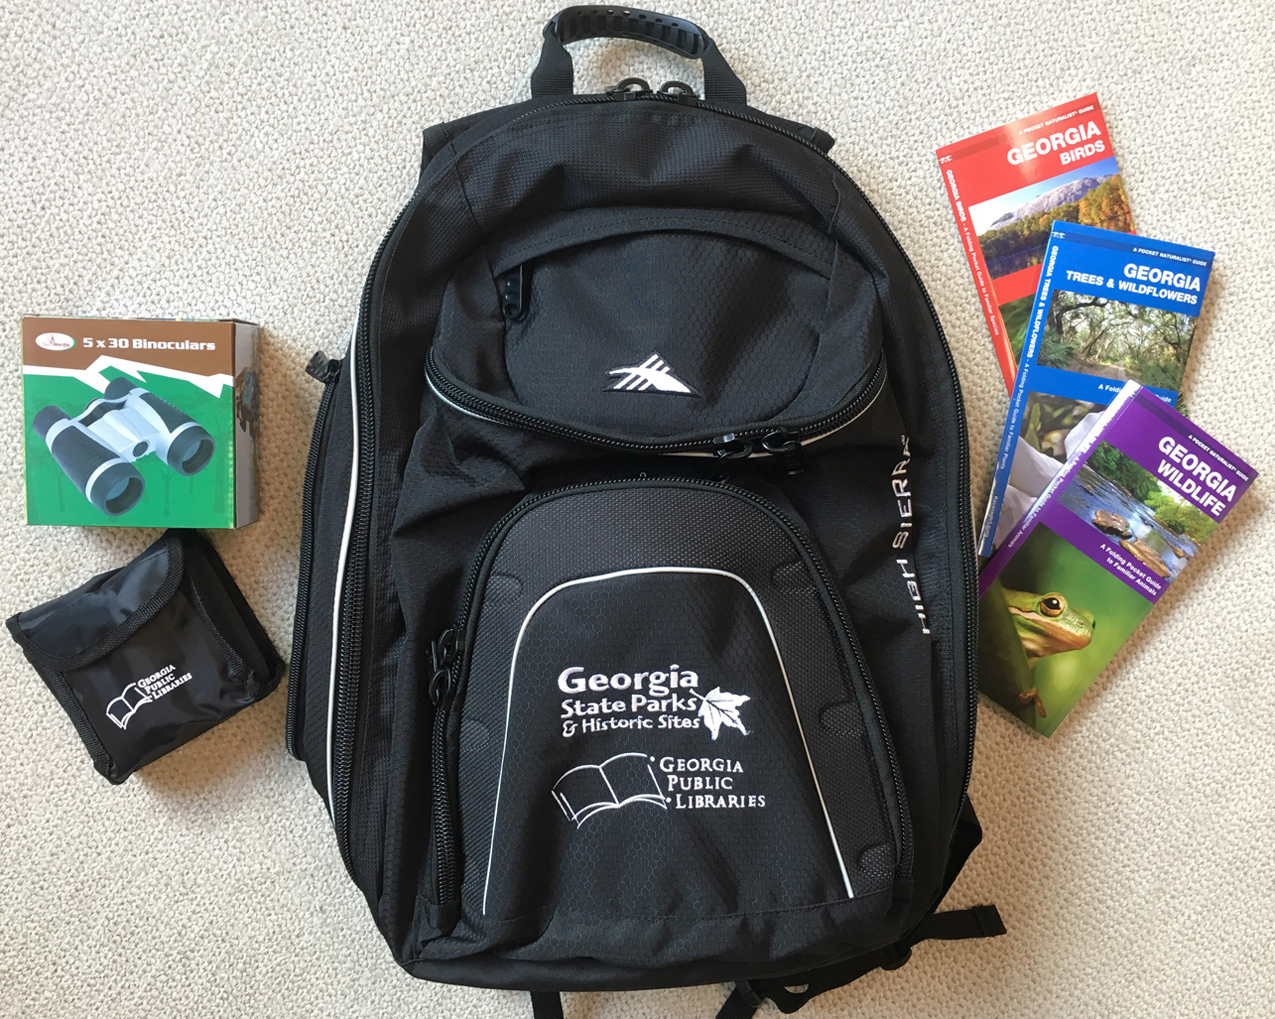 State Parks partnership backpack